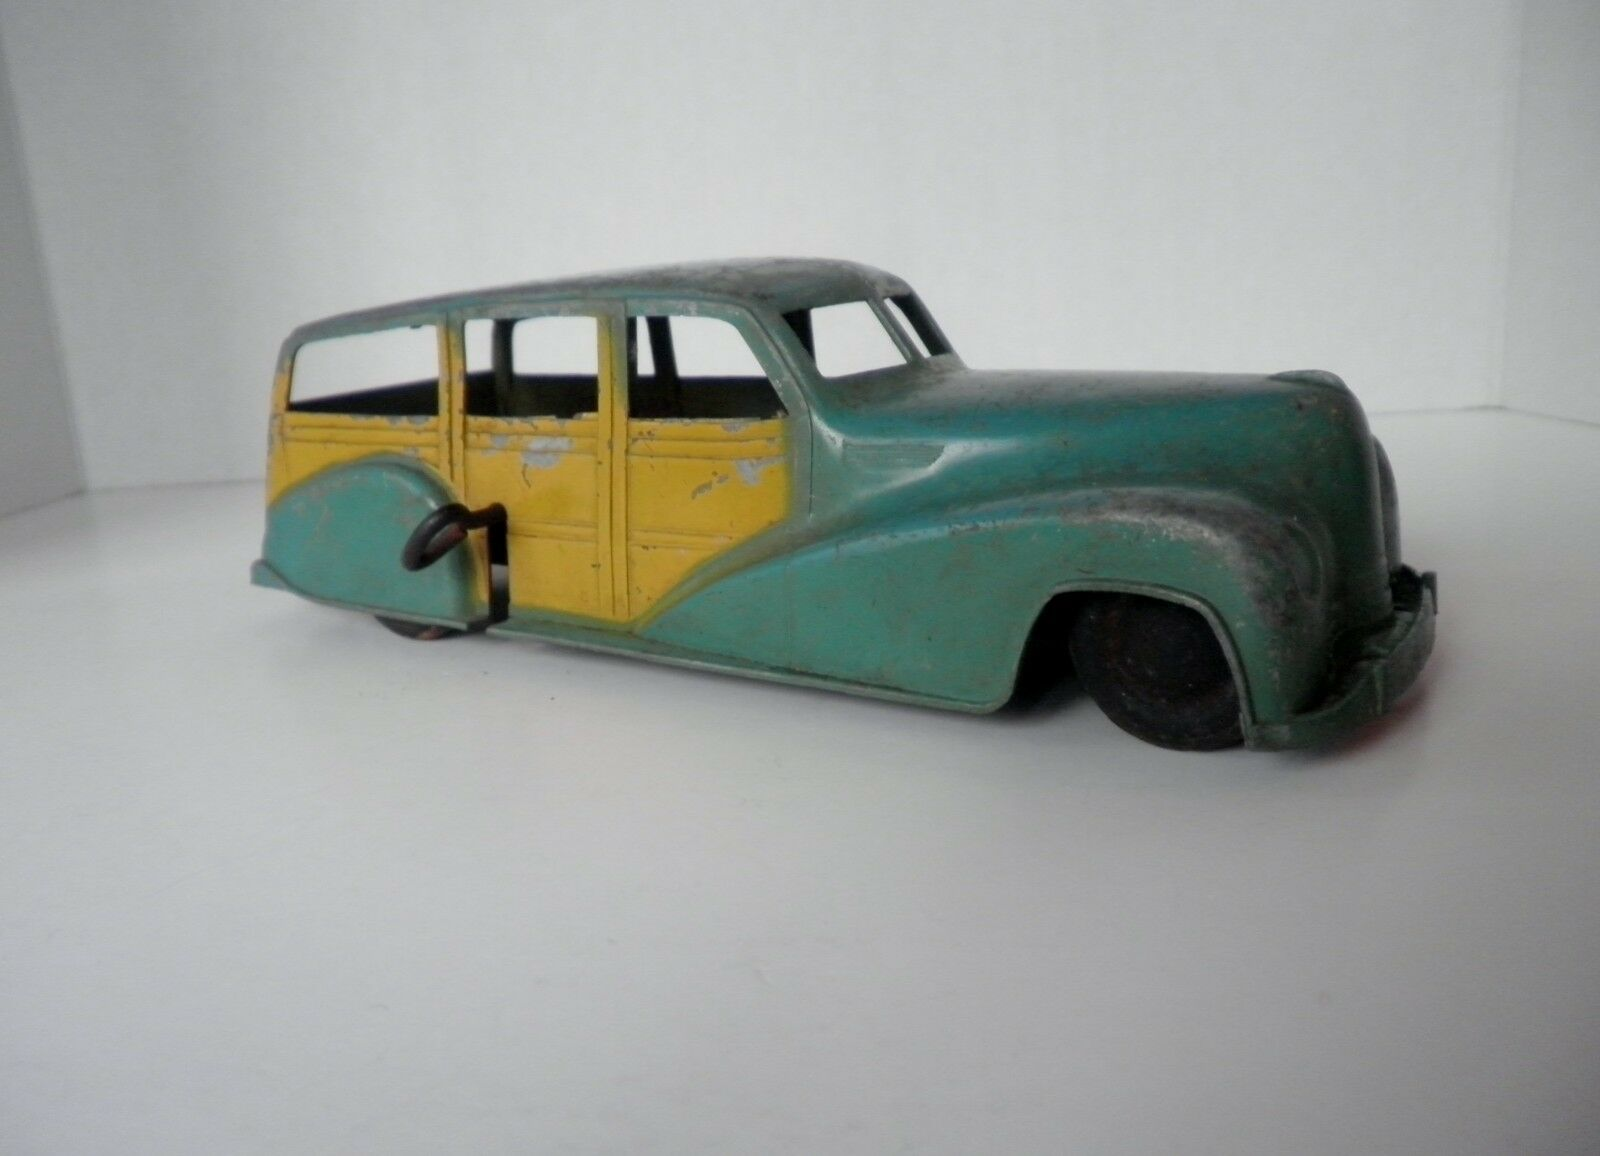 Metal maestros Die Cast Juguete Chrysler Woodie Station Wagon Coche de Juguete Wind-up